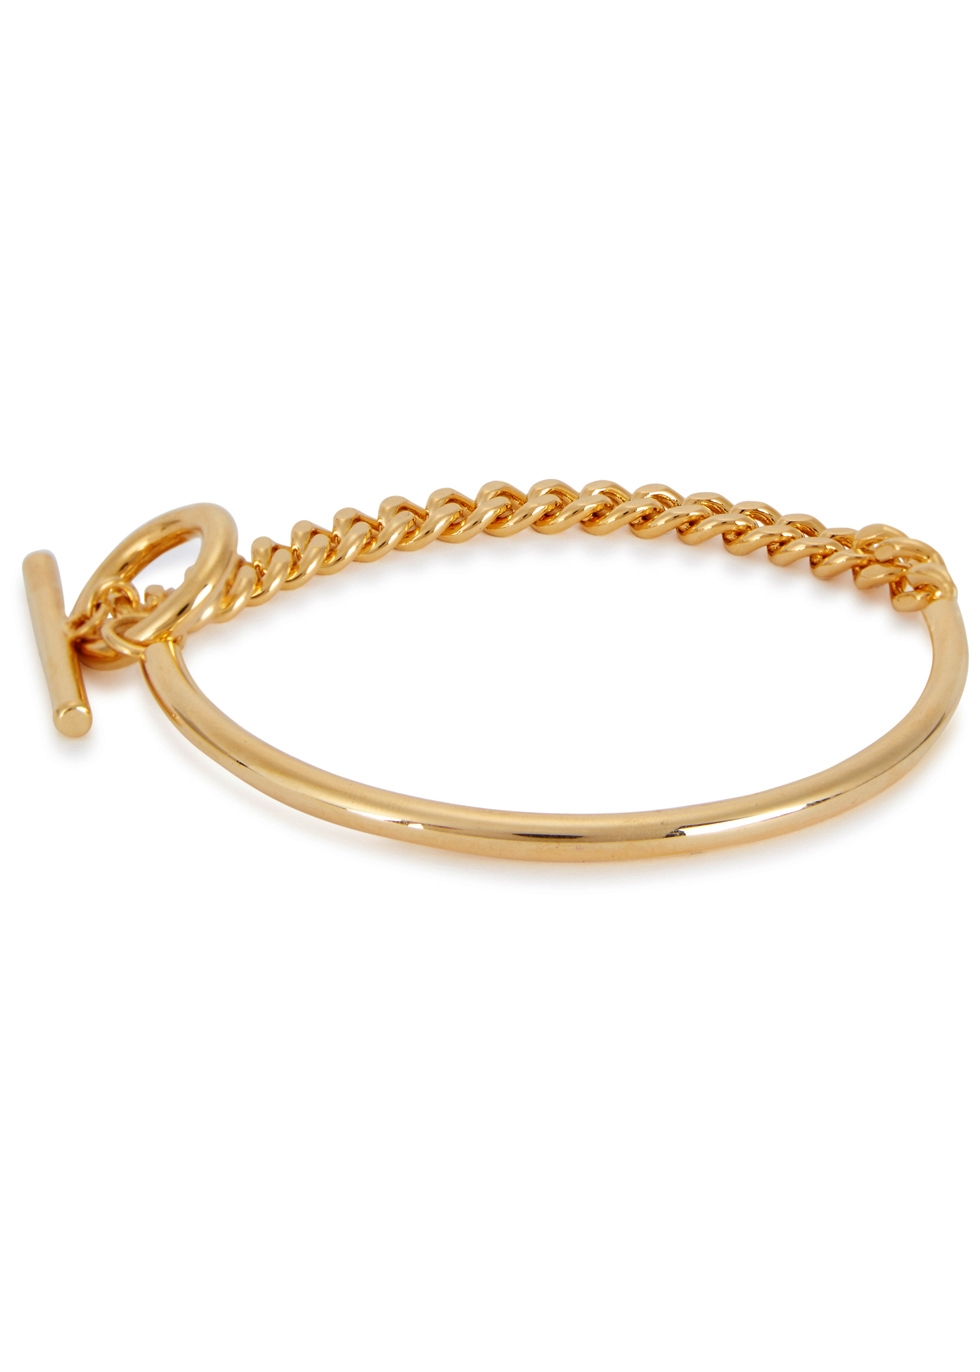 FALLON CURB GOLD CHAIN CUFF